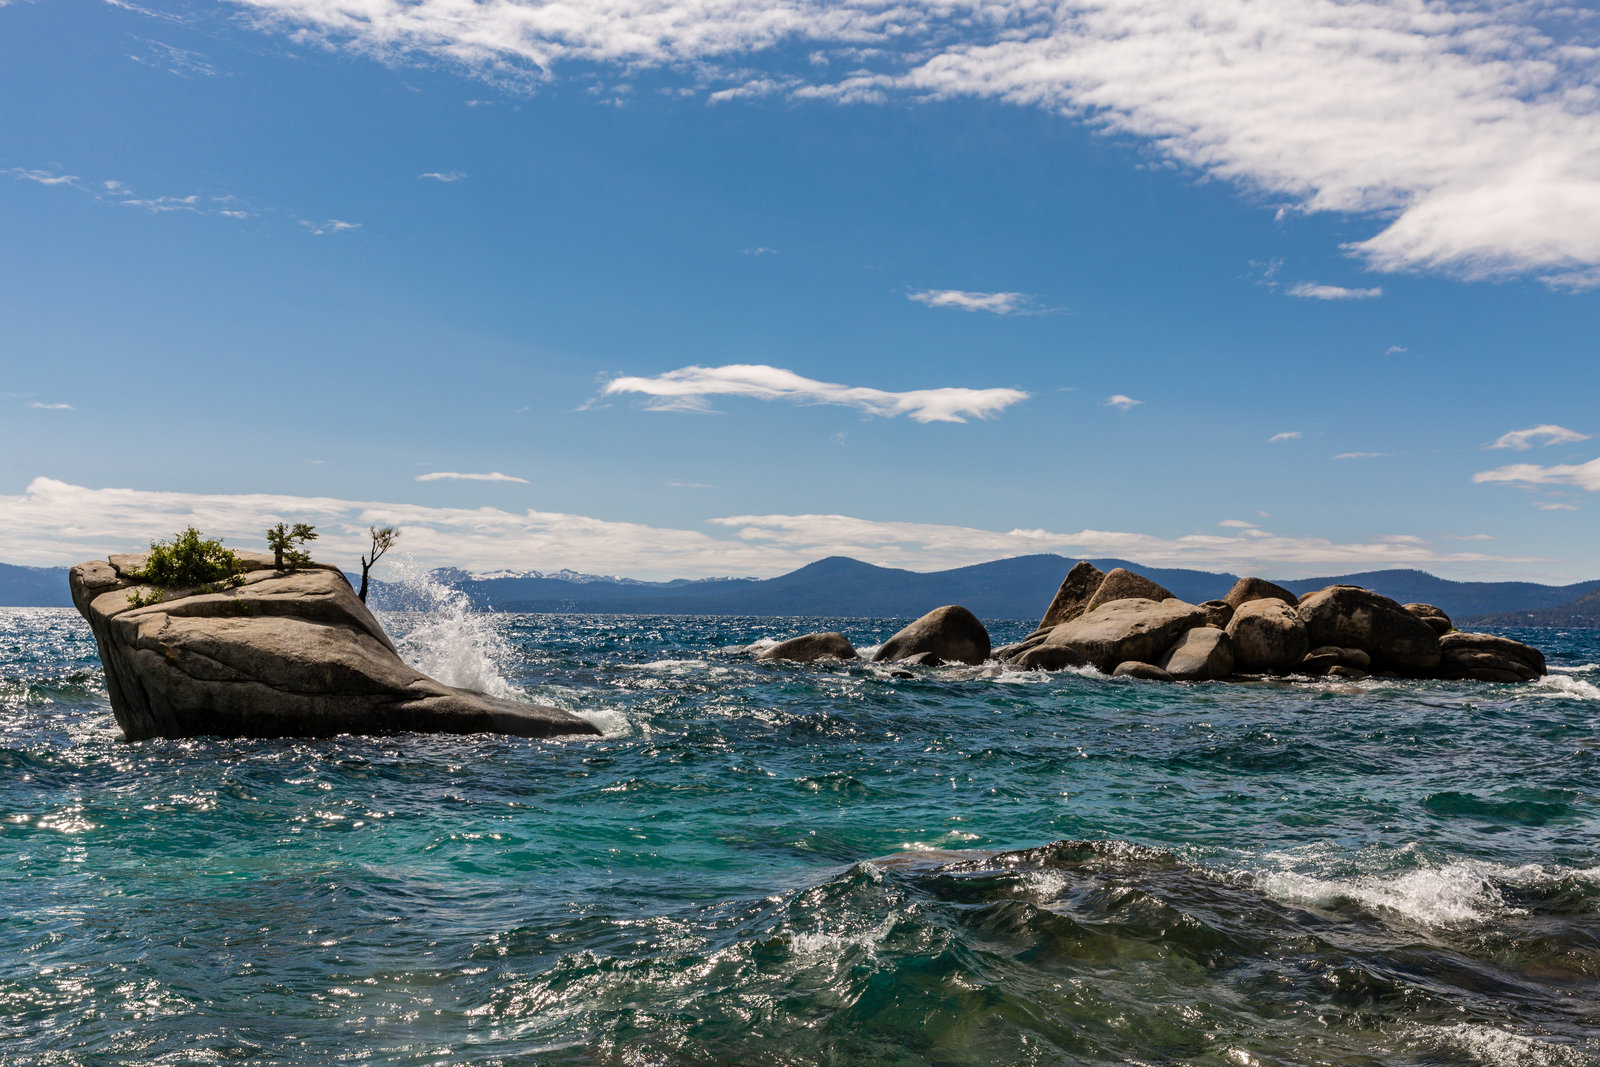 East shore Lake Tahoe offers stunning lake and mountain view perfect for the adventurous couple to hike and elope.